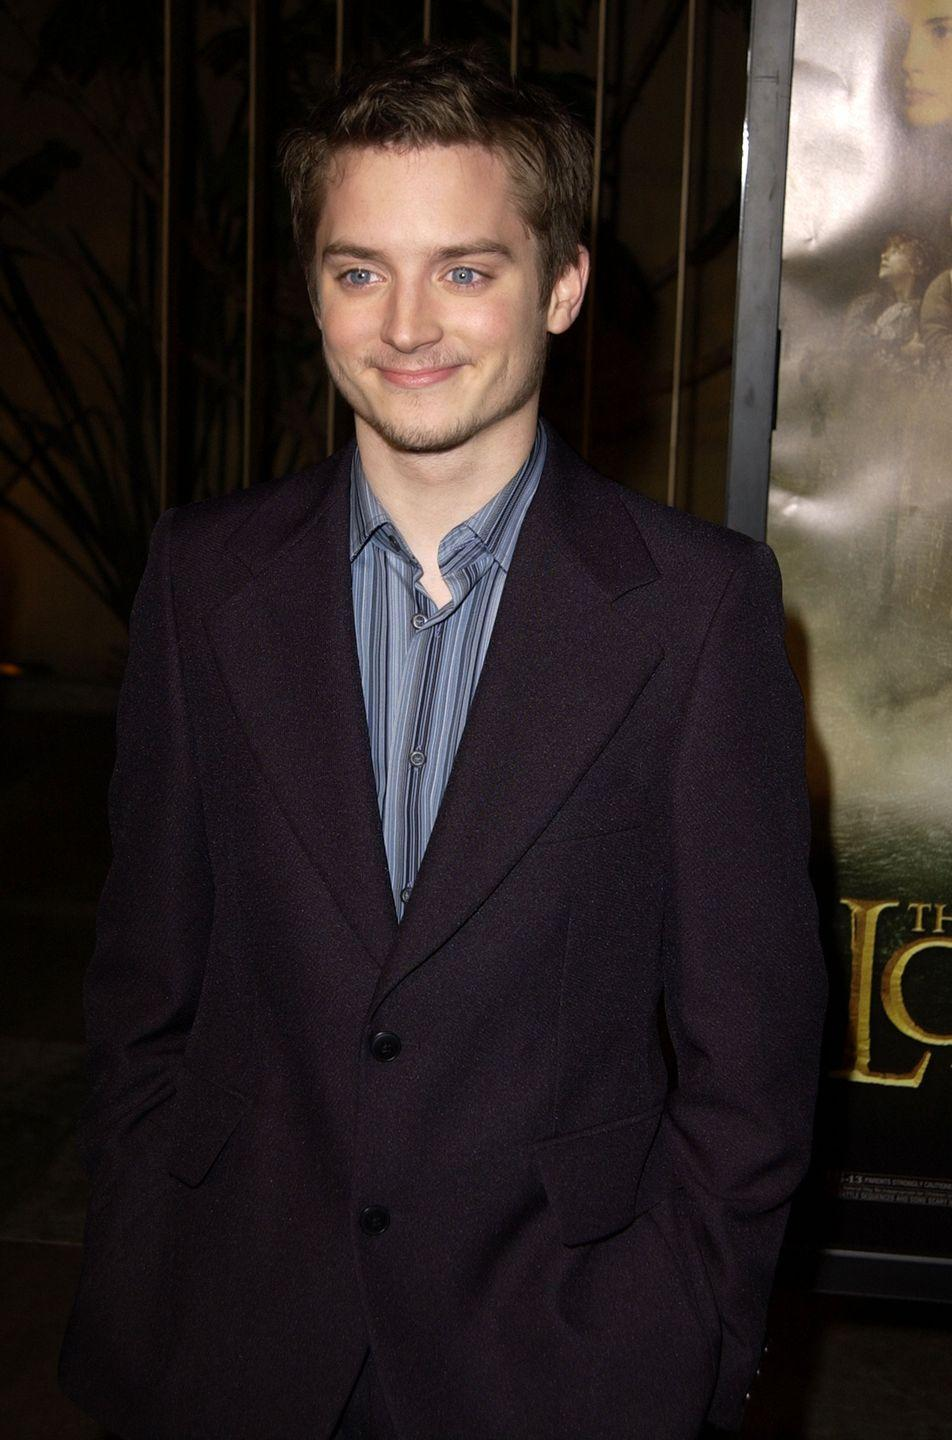 <p>Back at the beginning of his career, Elijah Wood was one of the most-talked about actors in <em>The Ice Storm </em>and eventually with the release of the <em>Lord of the Rings</em> franchise.</p>